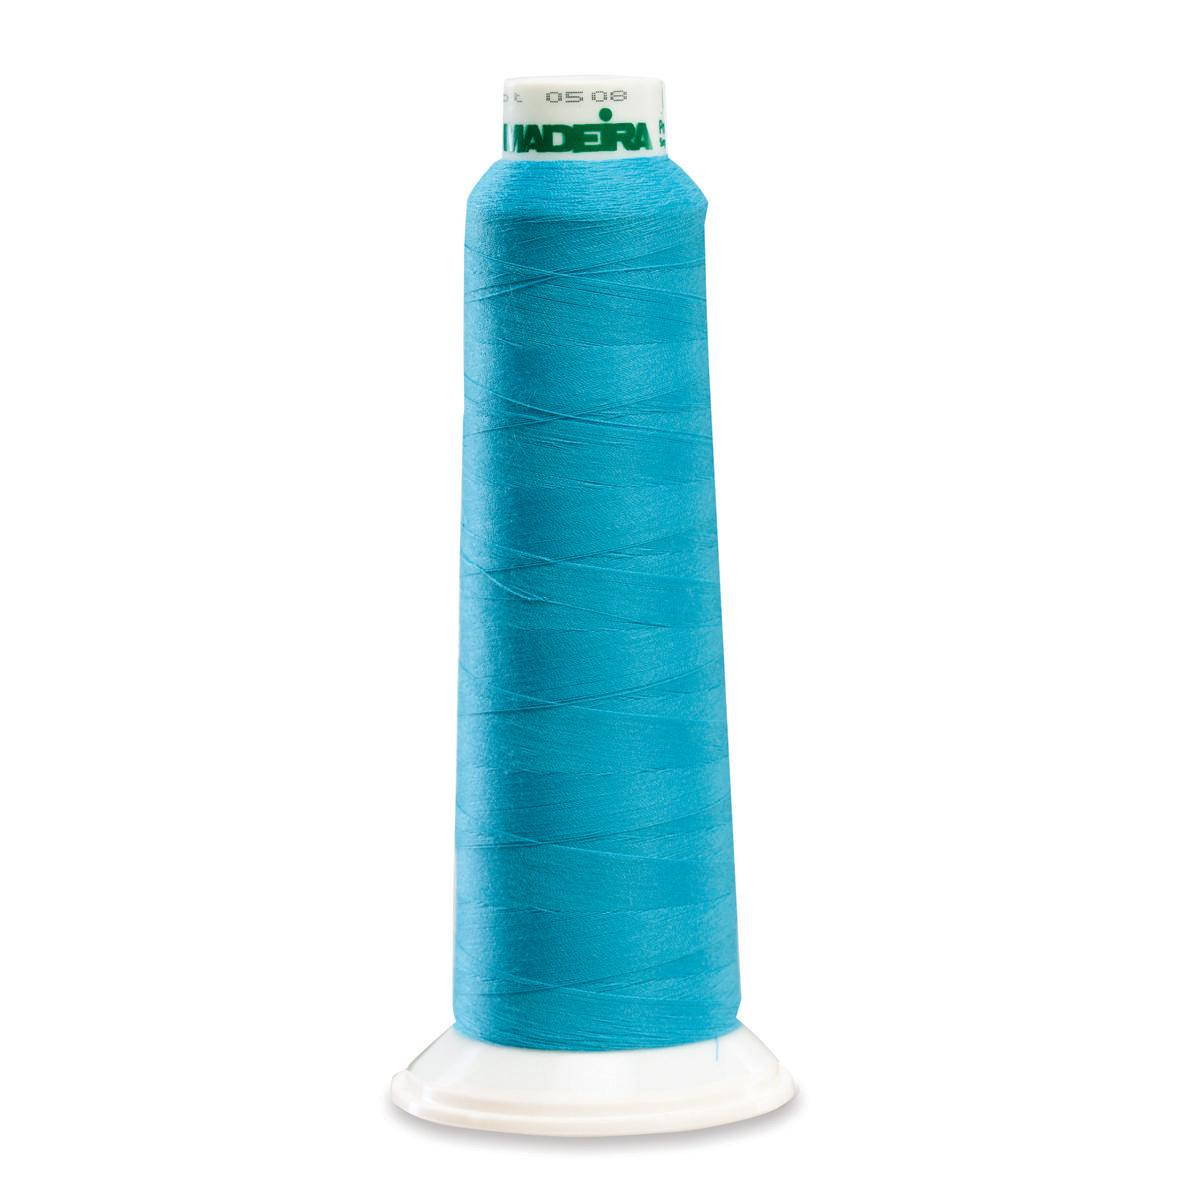 Madeira Serger Thread - Bright Turquoise